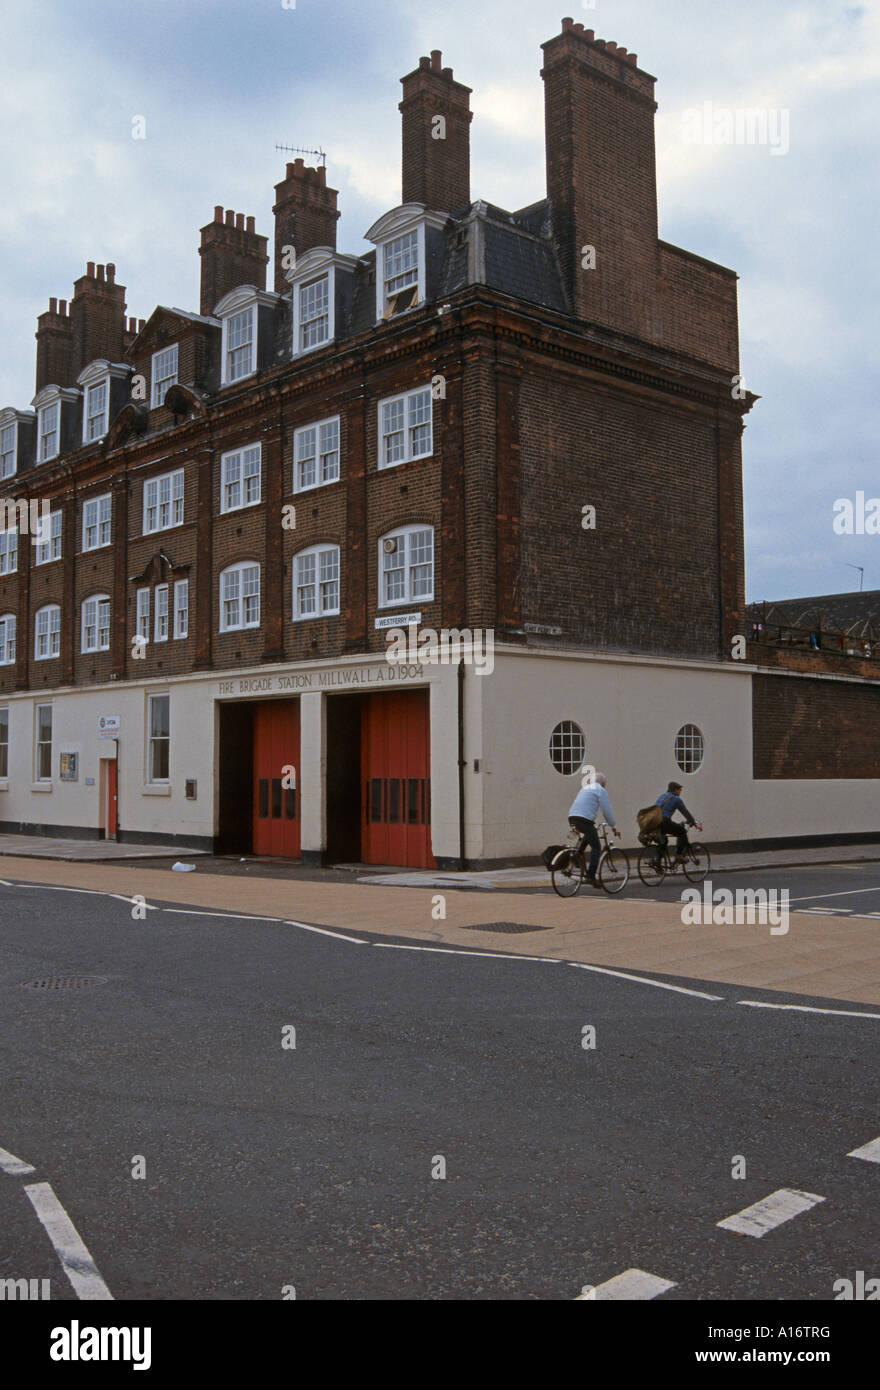 old millwall fire station  Millwall Docklands London England - Stock Image